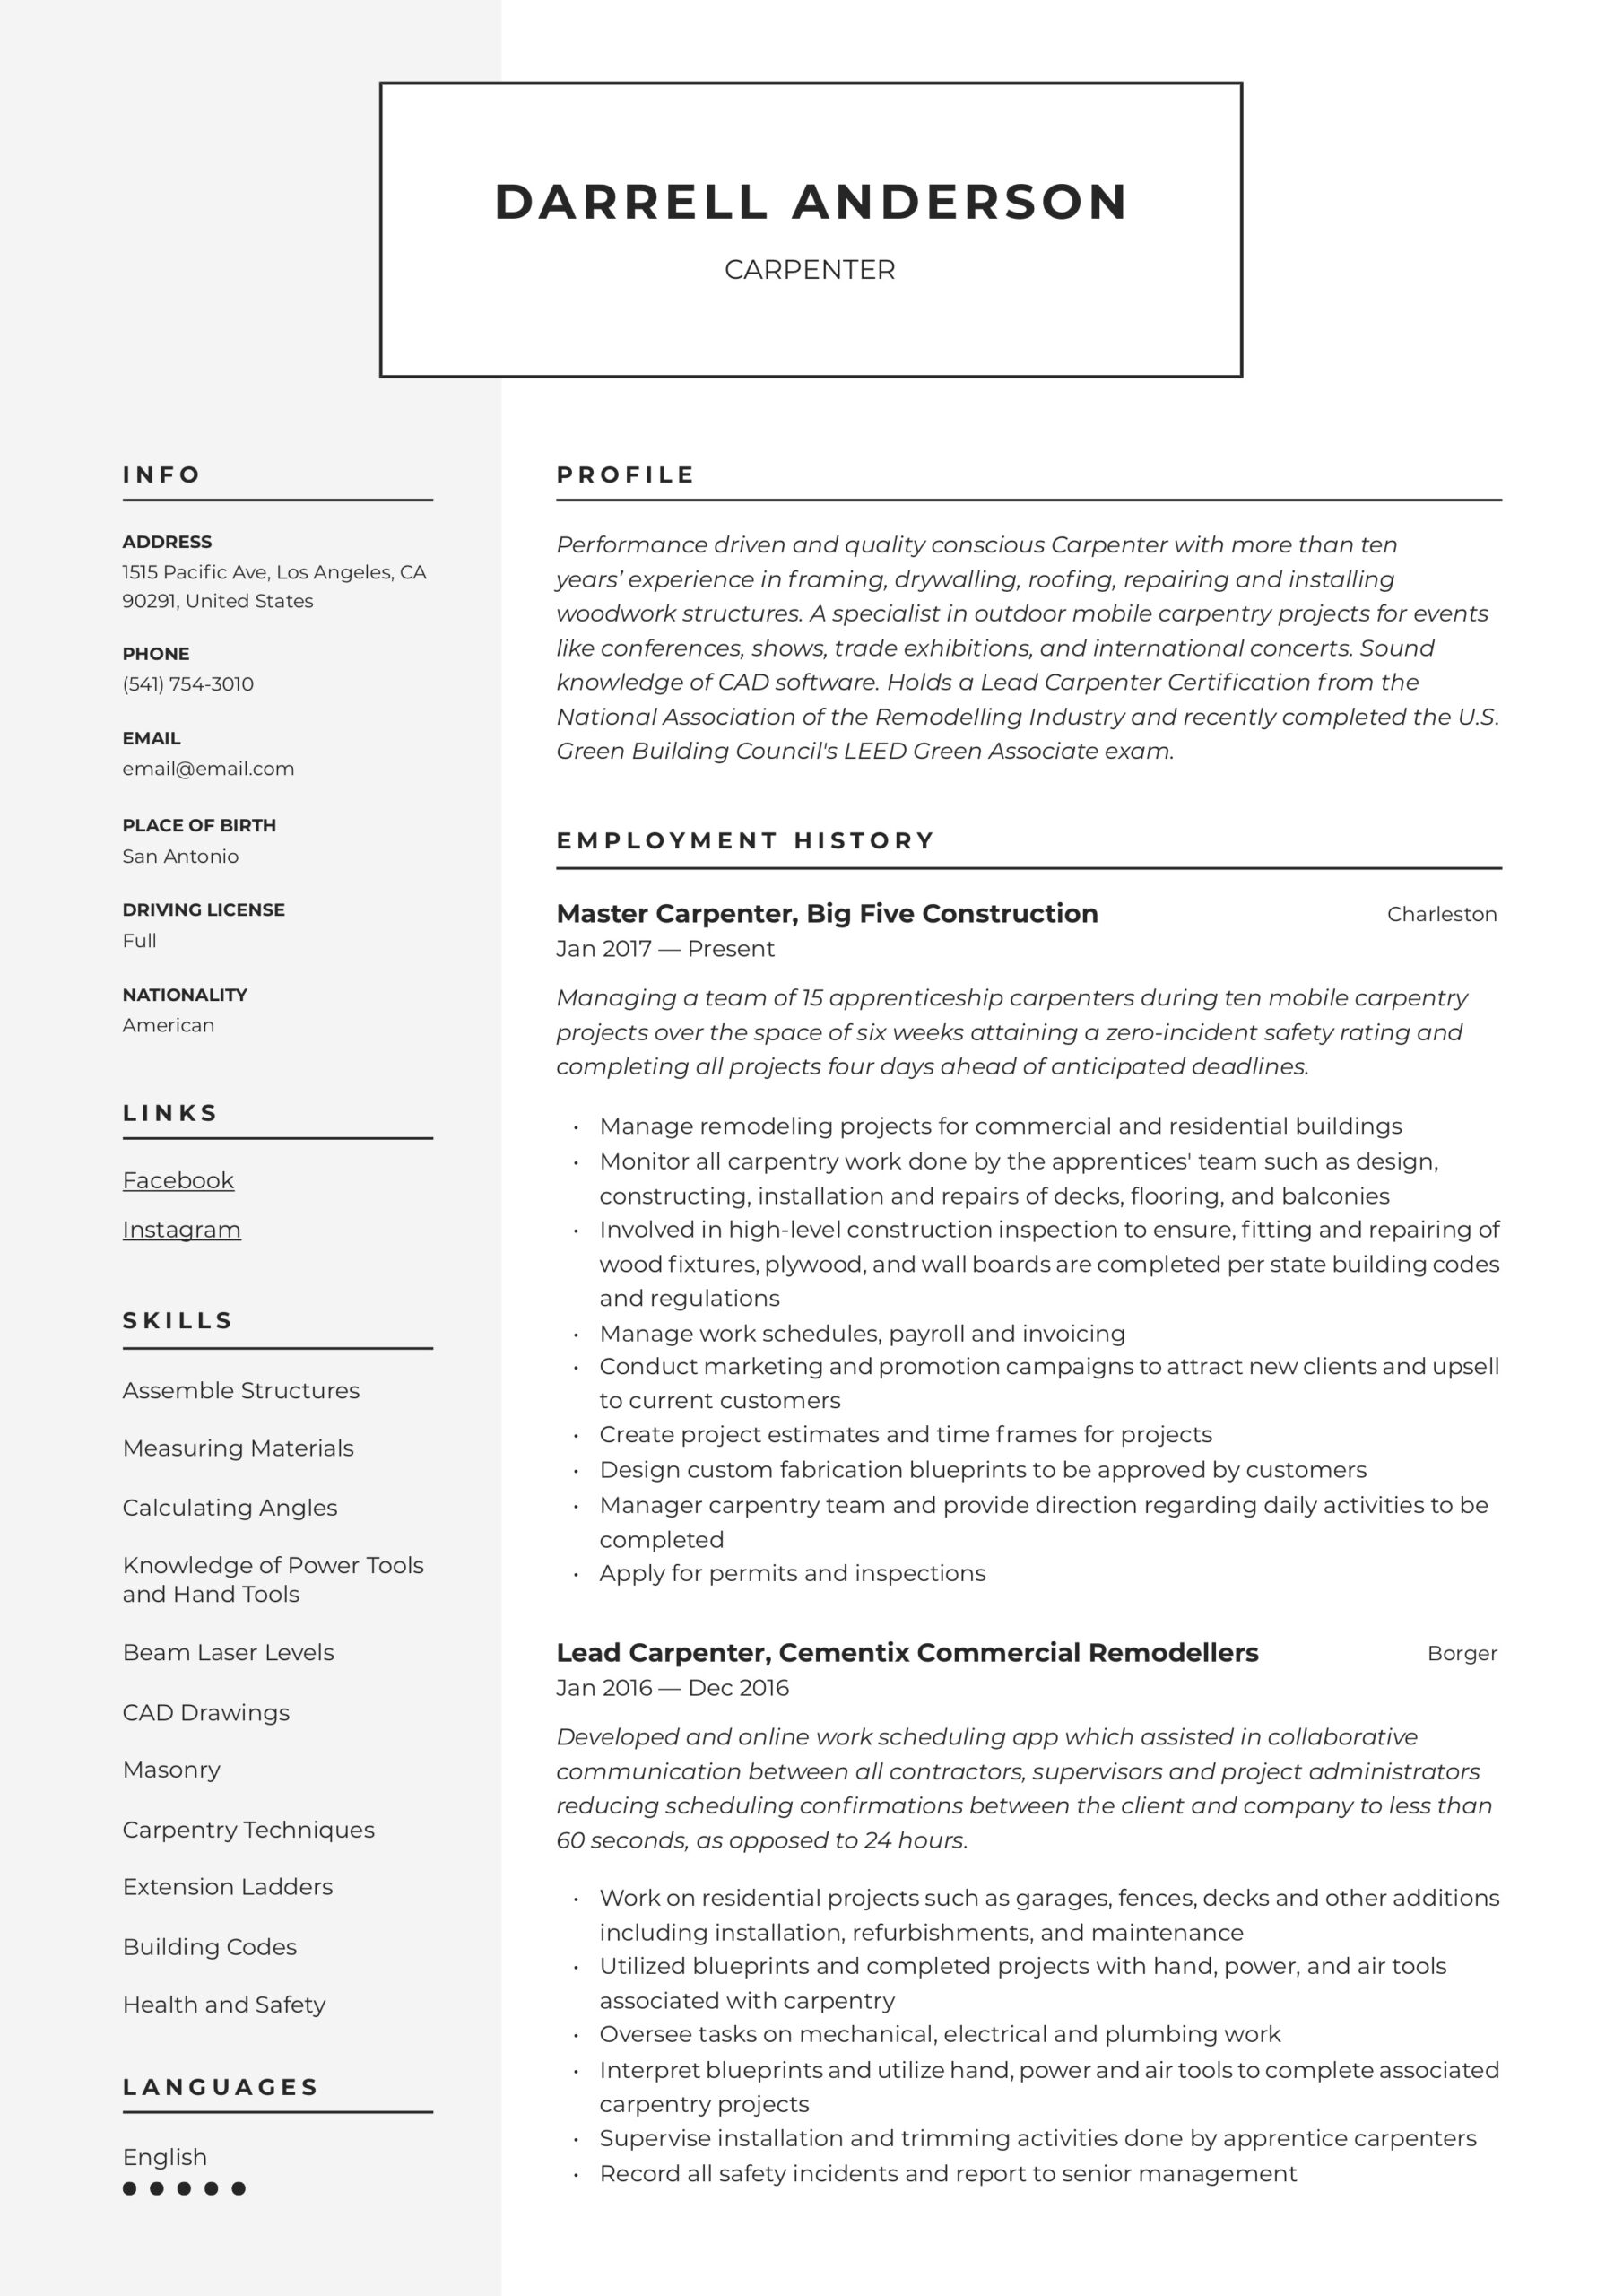 carpenter resume writing guide examples professional email address for curriculum vitae Resume Carpenter Resume Examples